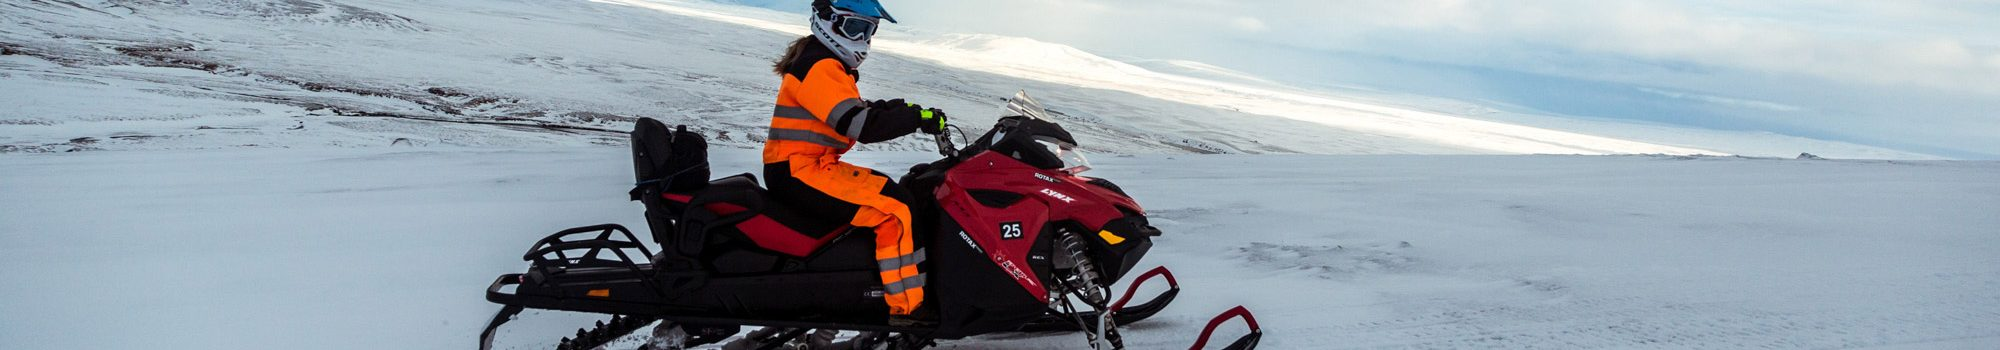 snowmobile equipment on langjokull glacier